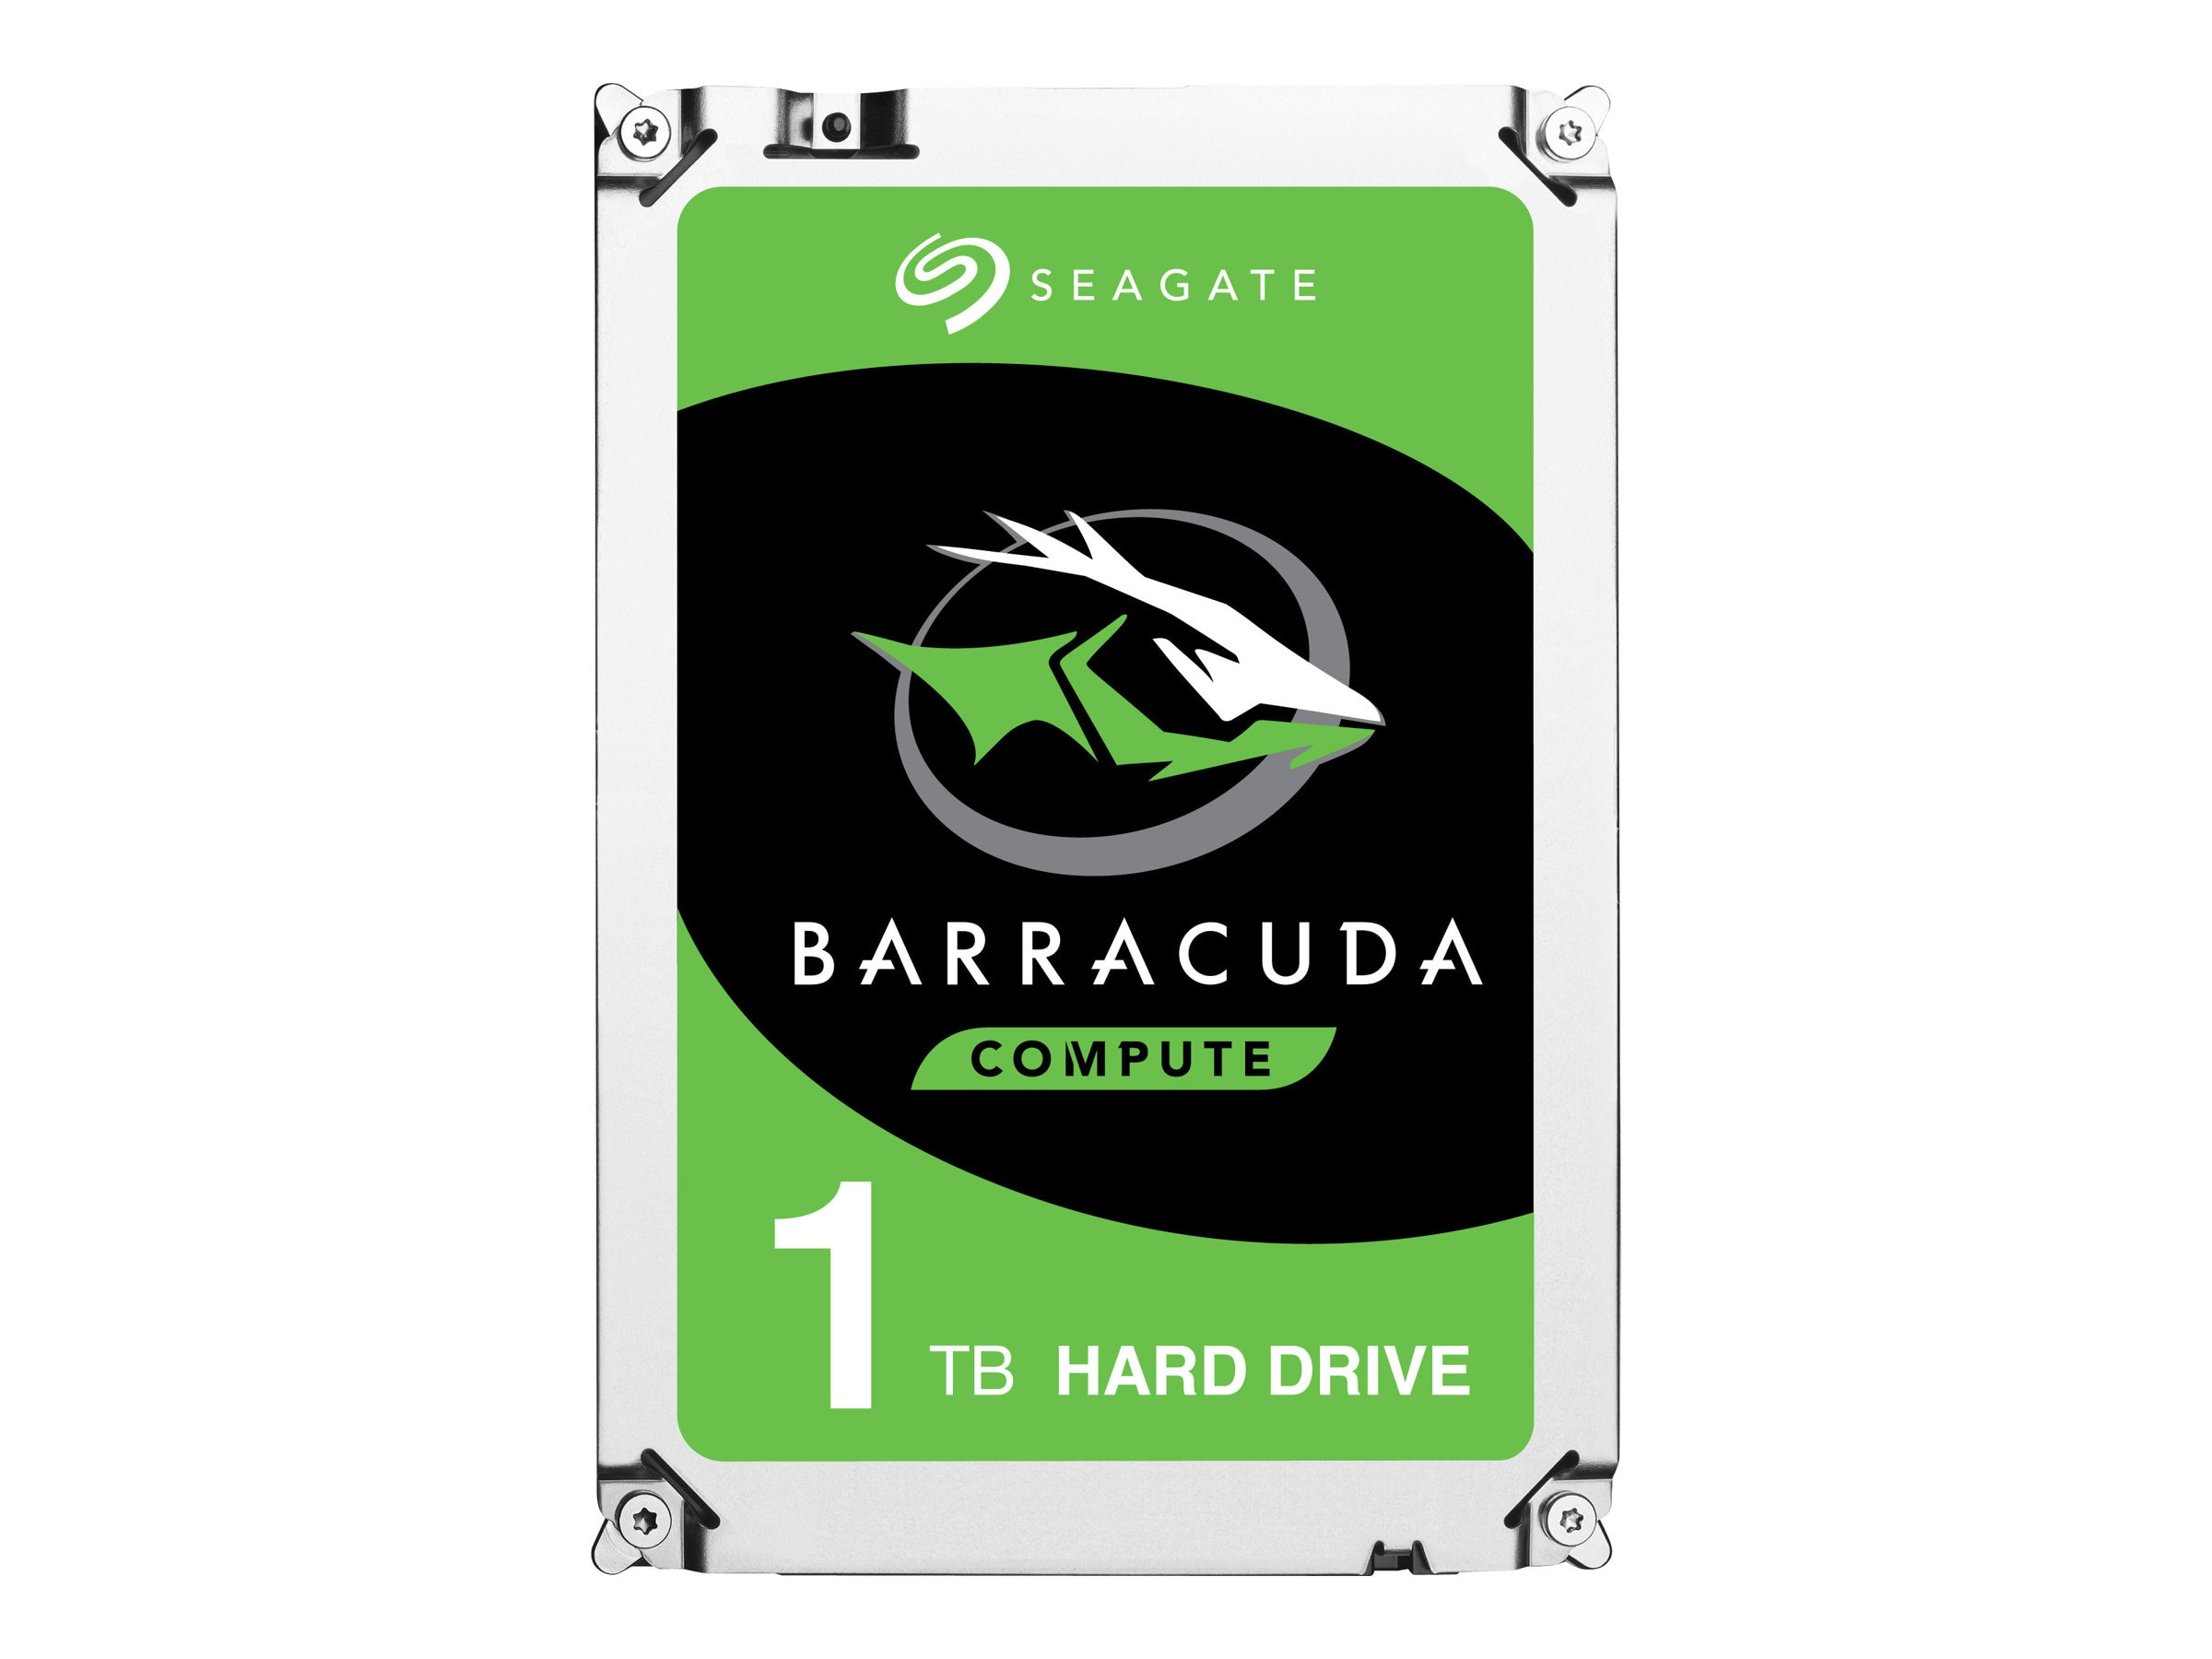 Seagate 1TB BarraCuda SATA 6Gb s 2.5 7mm Internal Hard Drive, ST1000LM048